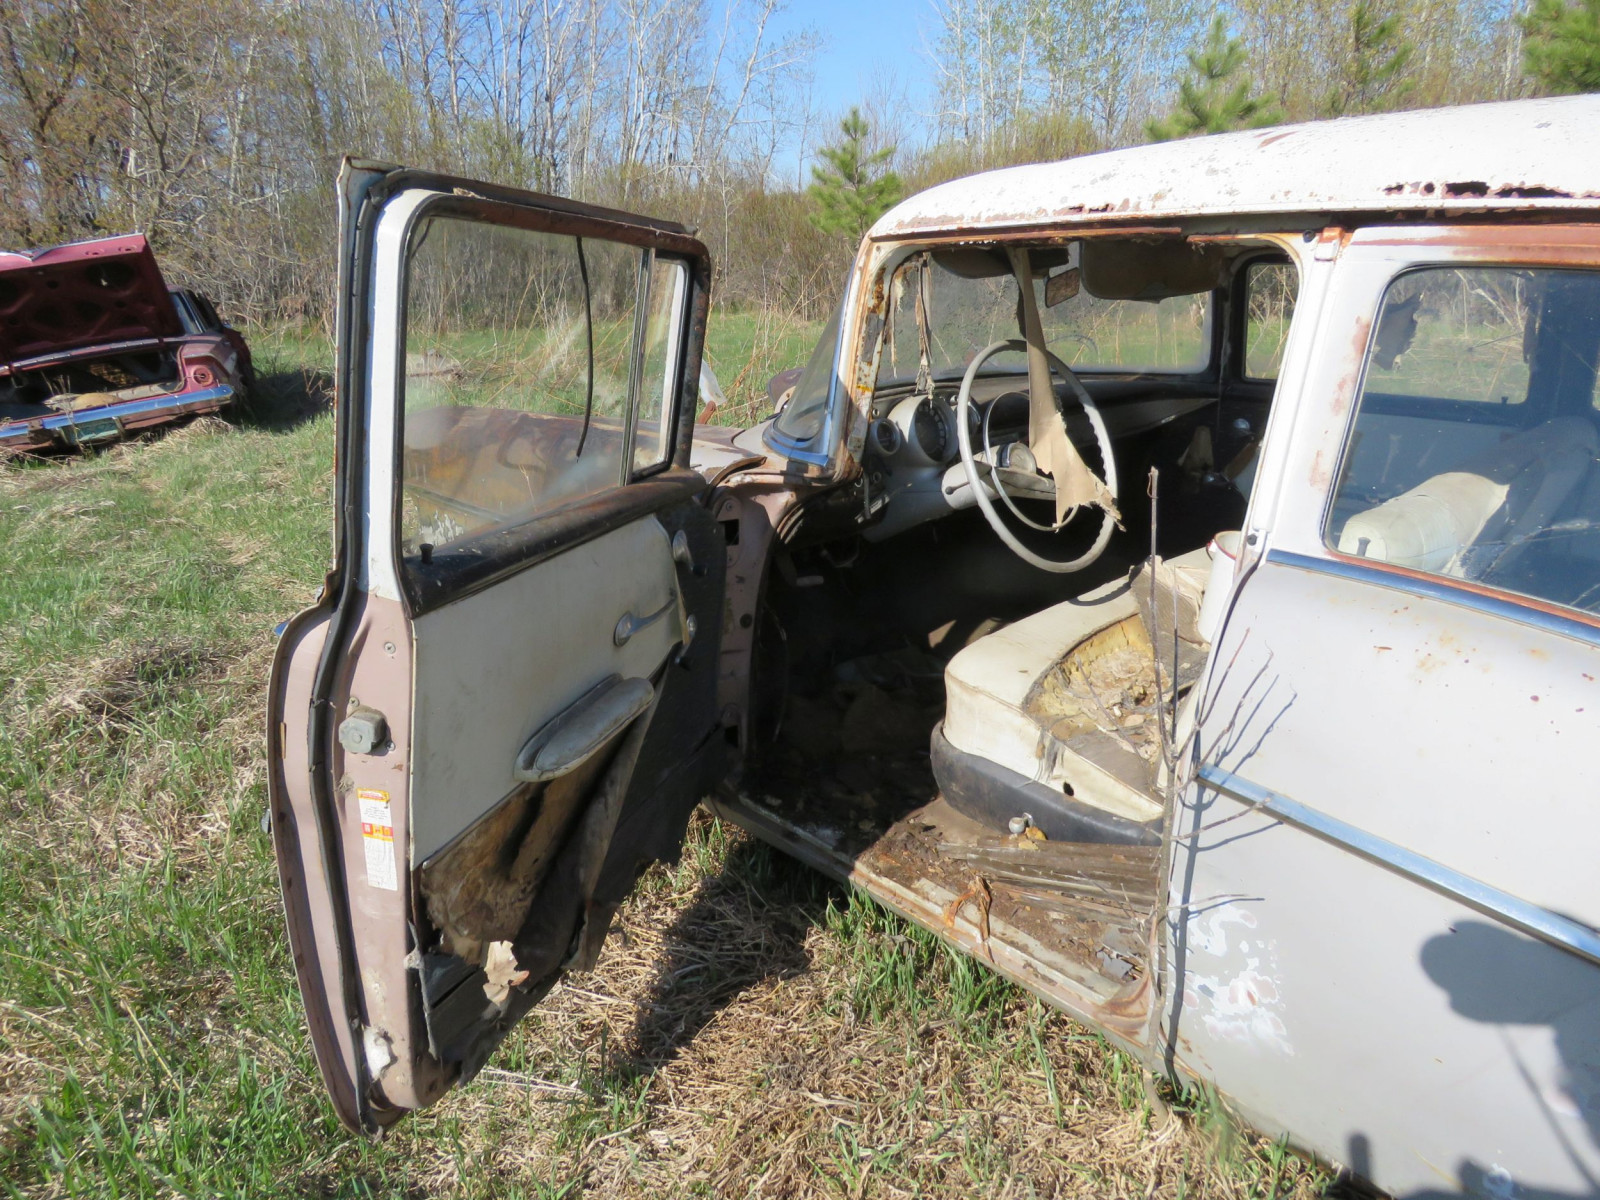 1957 Chevrolet 4dr Sedan parts only - Image 5